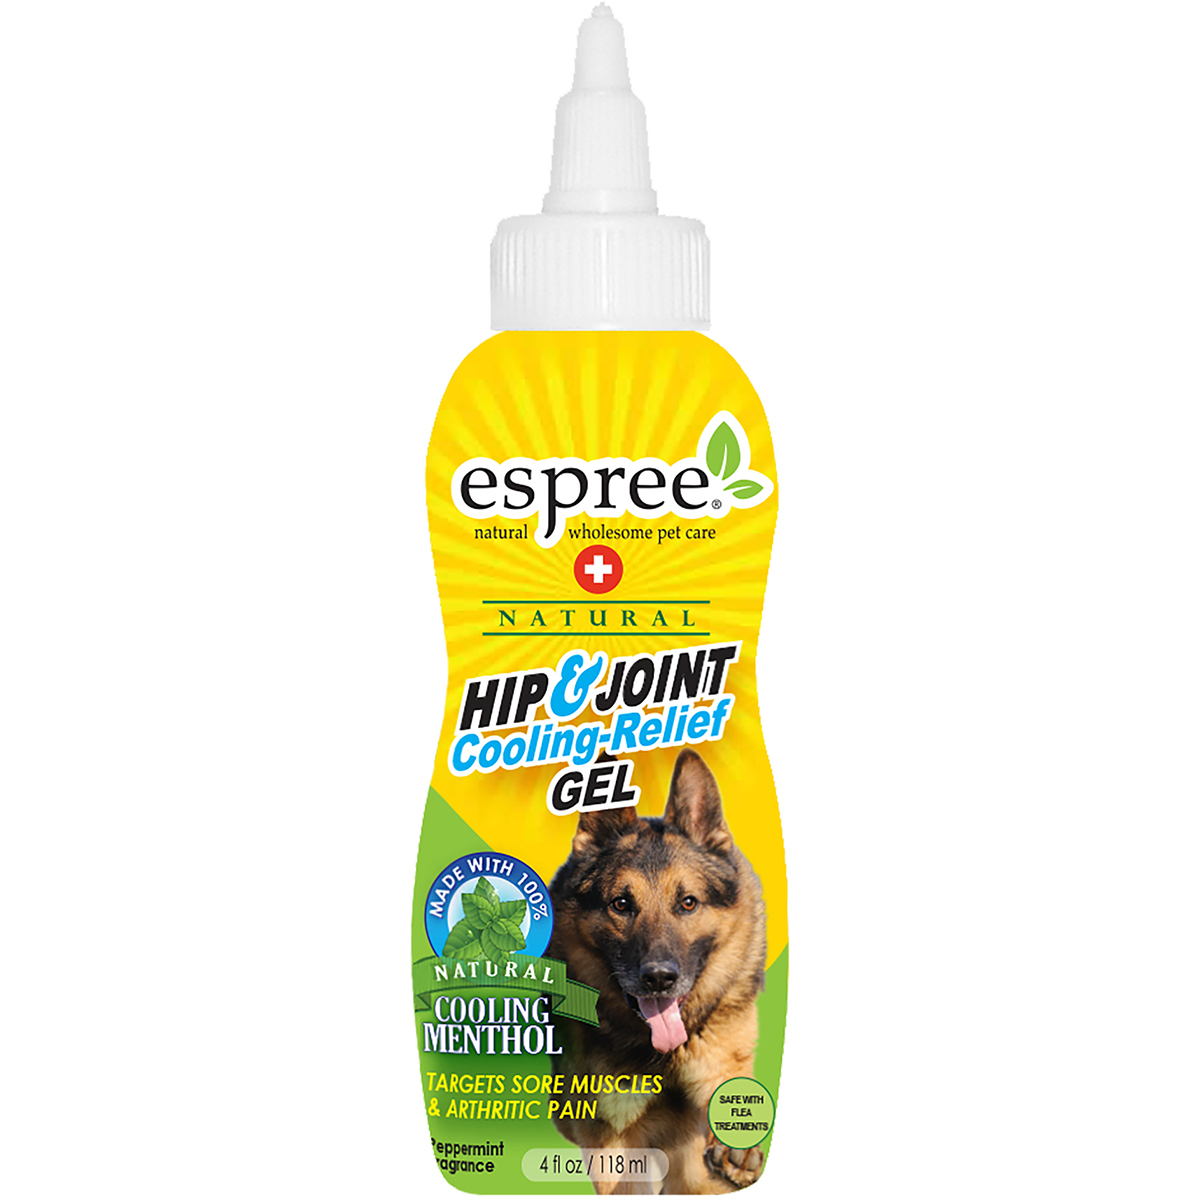 Espree Natural Hip & Joint Cooling Relief Gel 4oz-Peppermint